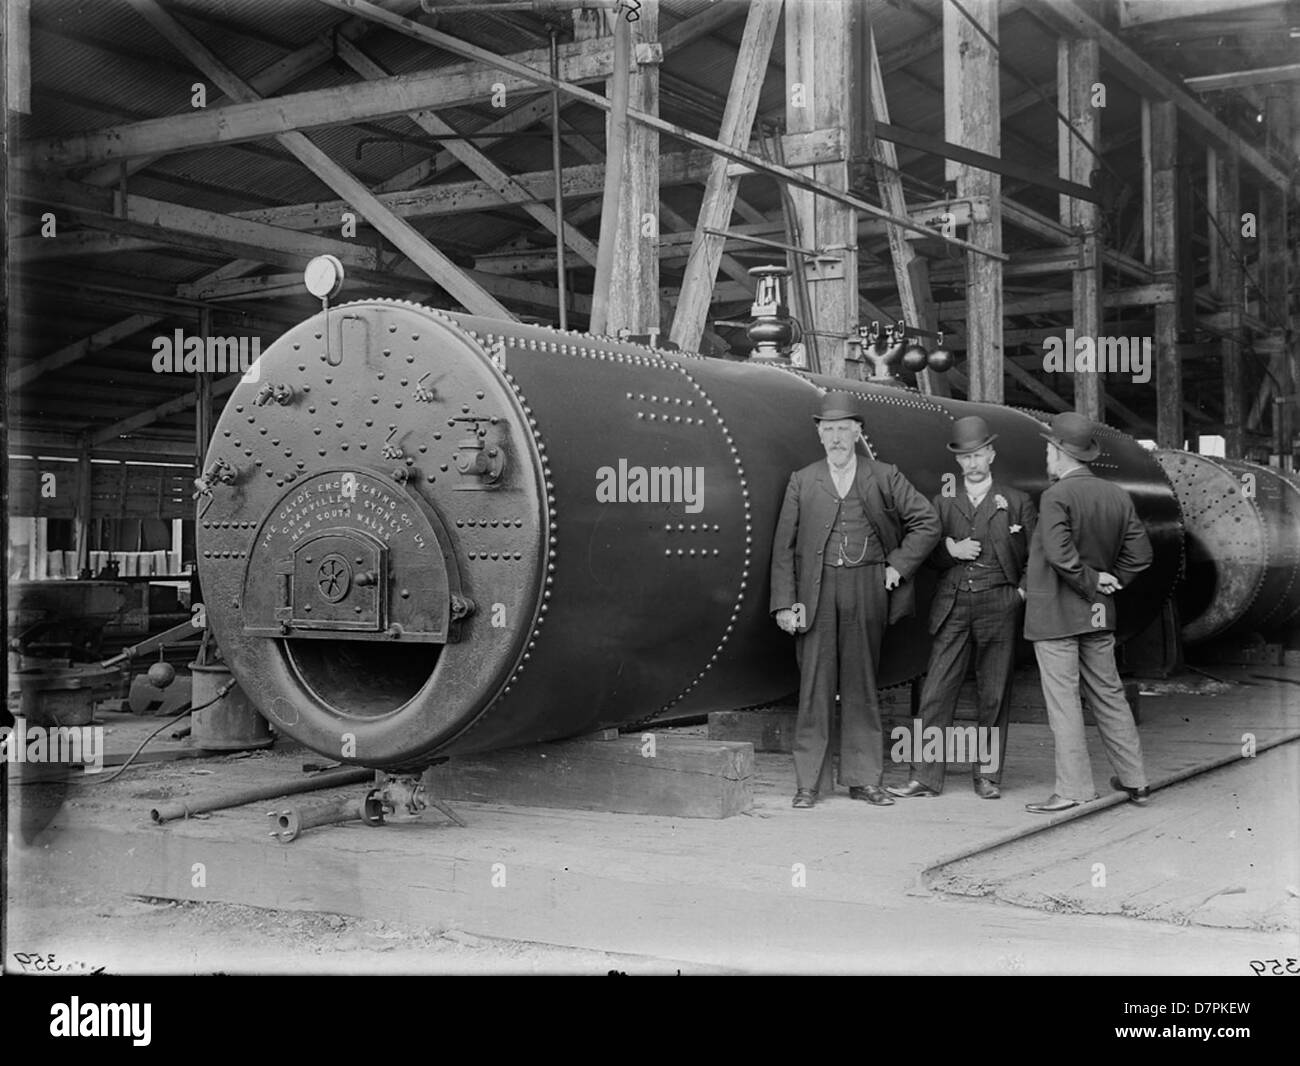 Staff with Cornish boilers - Stock Image